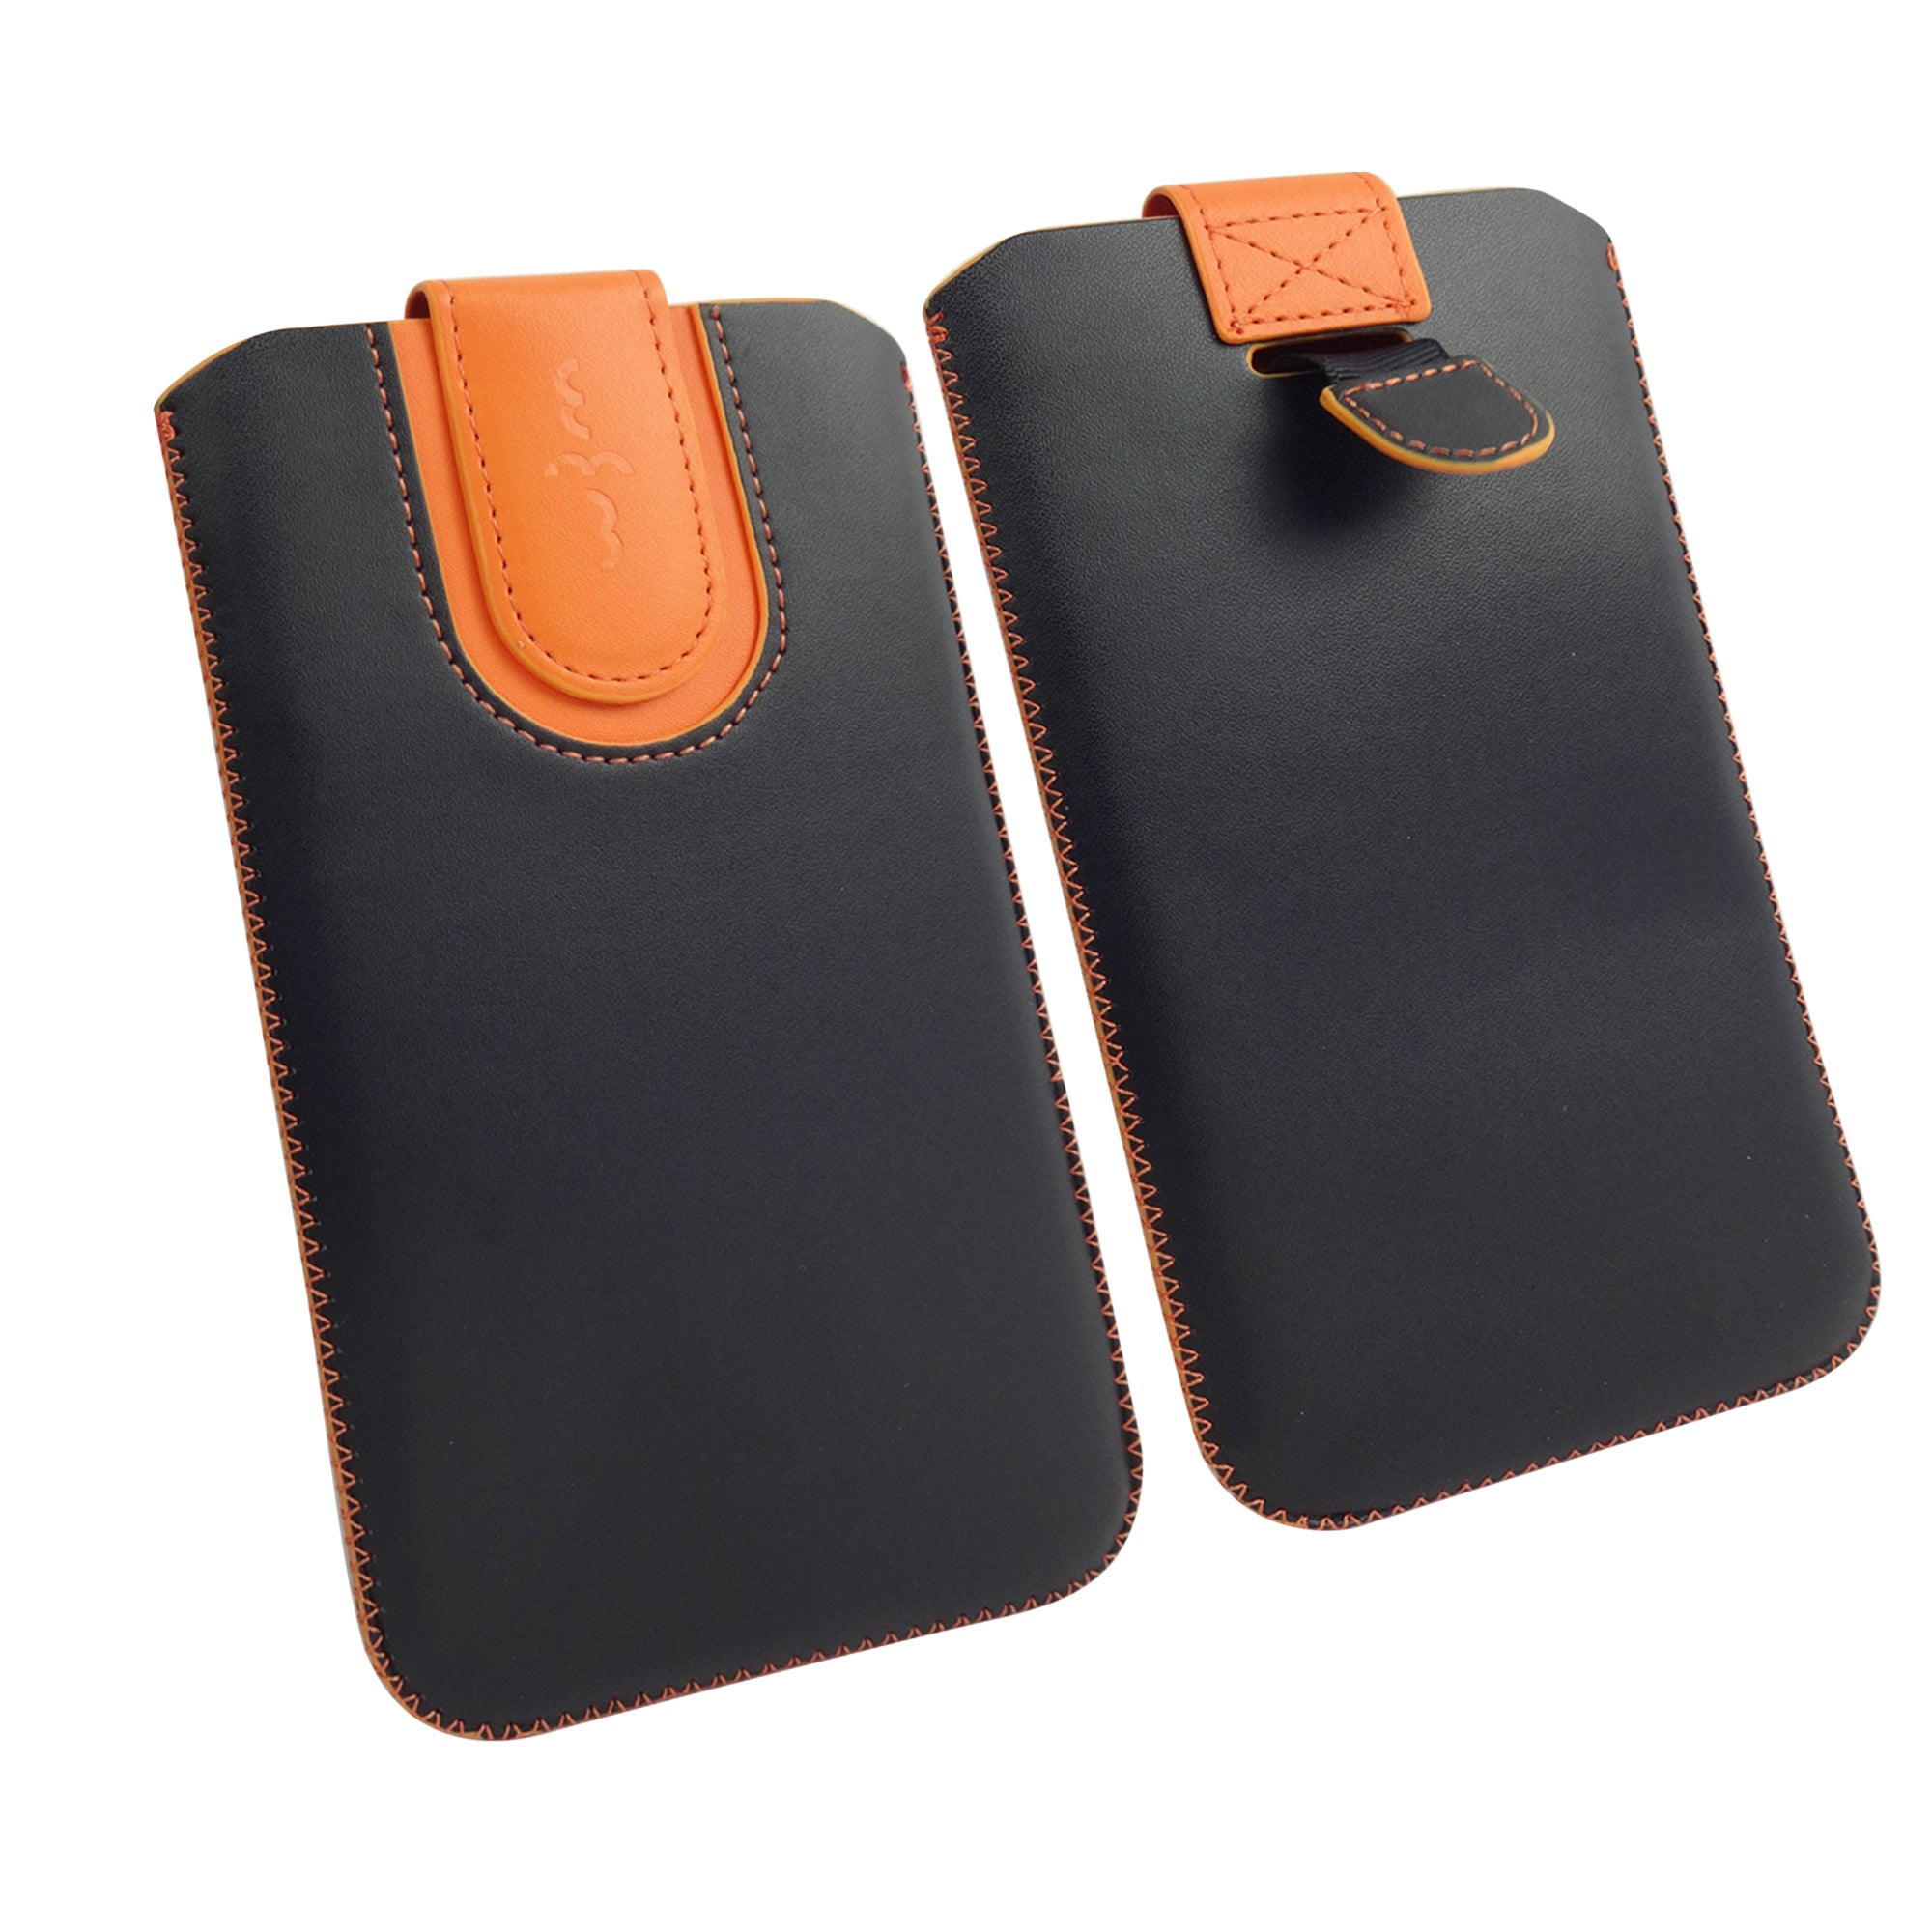 Universal Phone Pouch - Black Orange Plain